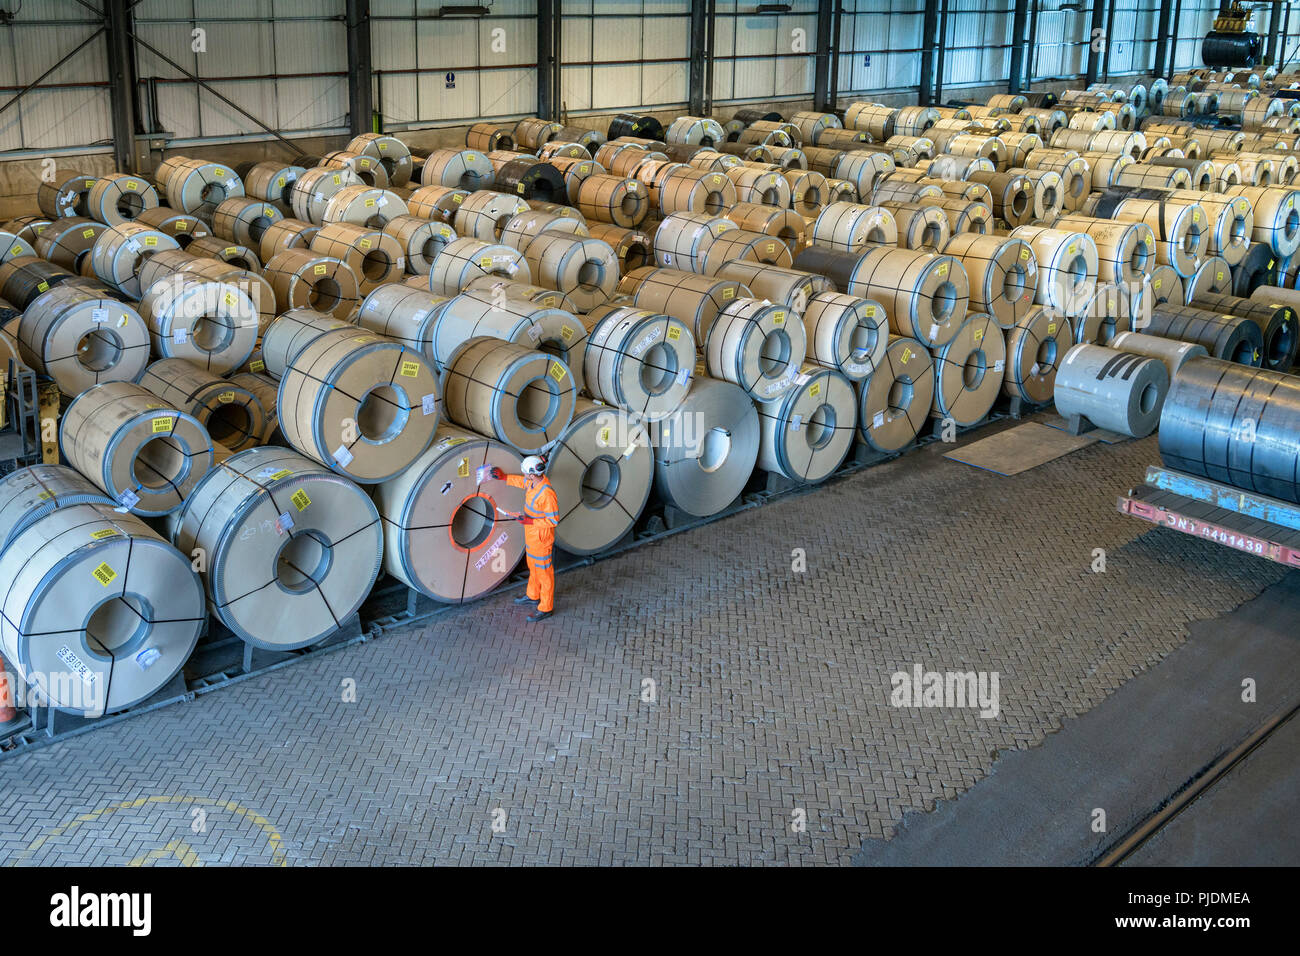 Worker with rows of sheet steel in storage at port - Stock Image